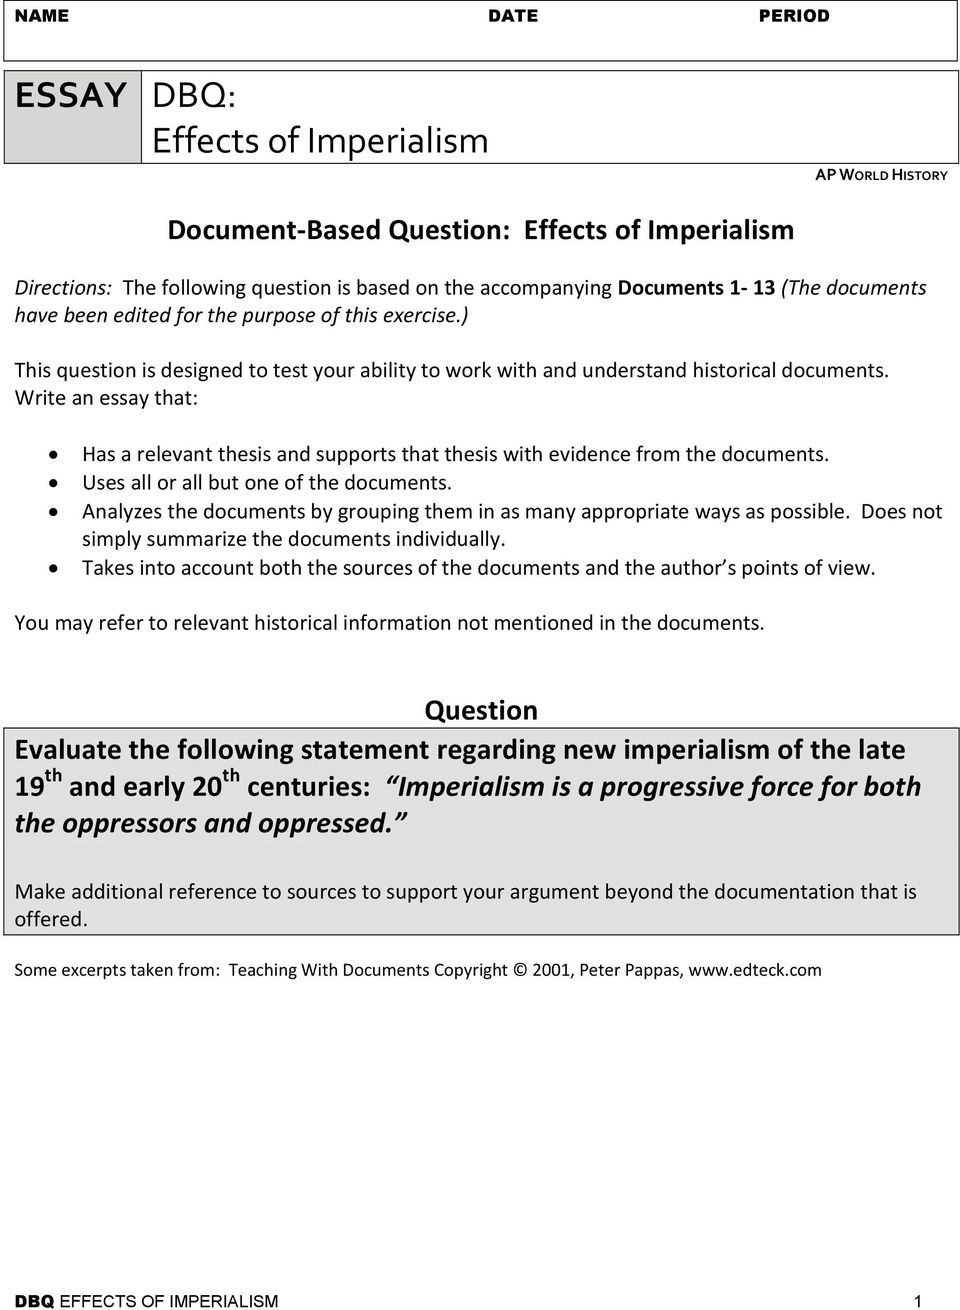 essay dbq effects of imperialism ap world history pdf write an essay that has a relevant thesis and supports that thesis evidence from